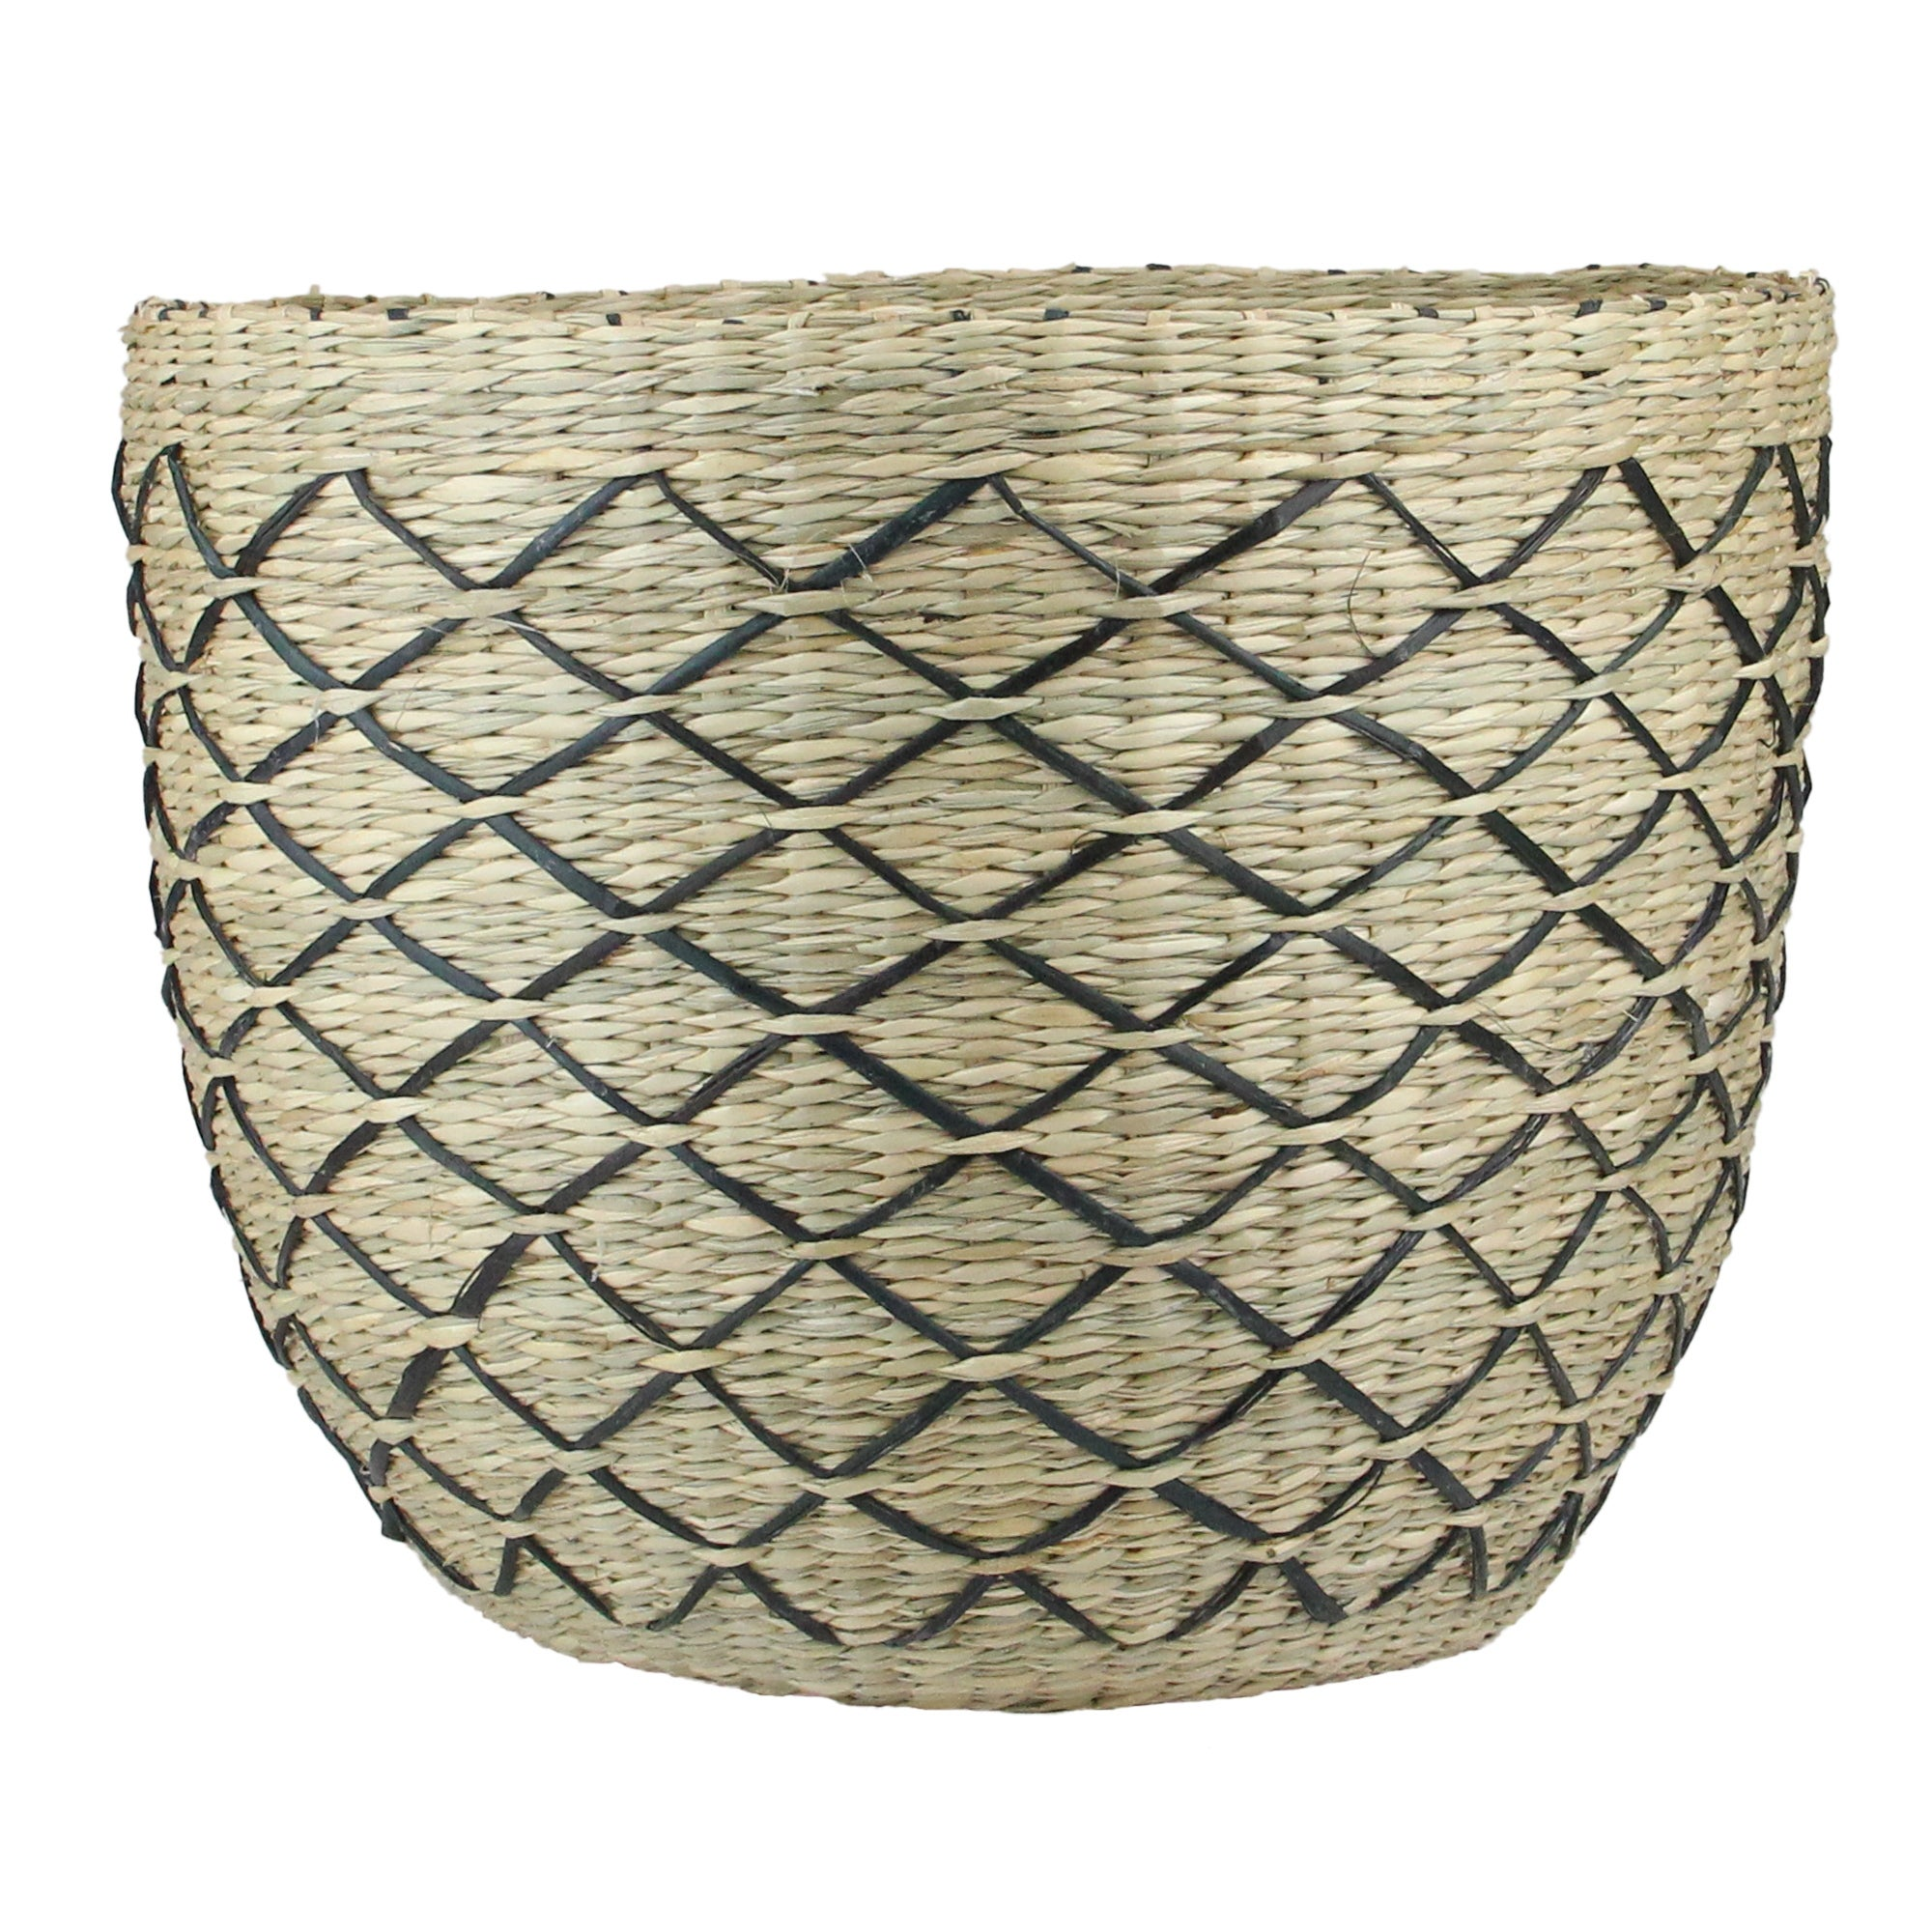 11.25 Natural Brown and Black Lattice Print Woven Seagrass Basket - N/A